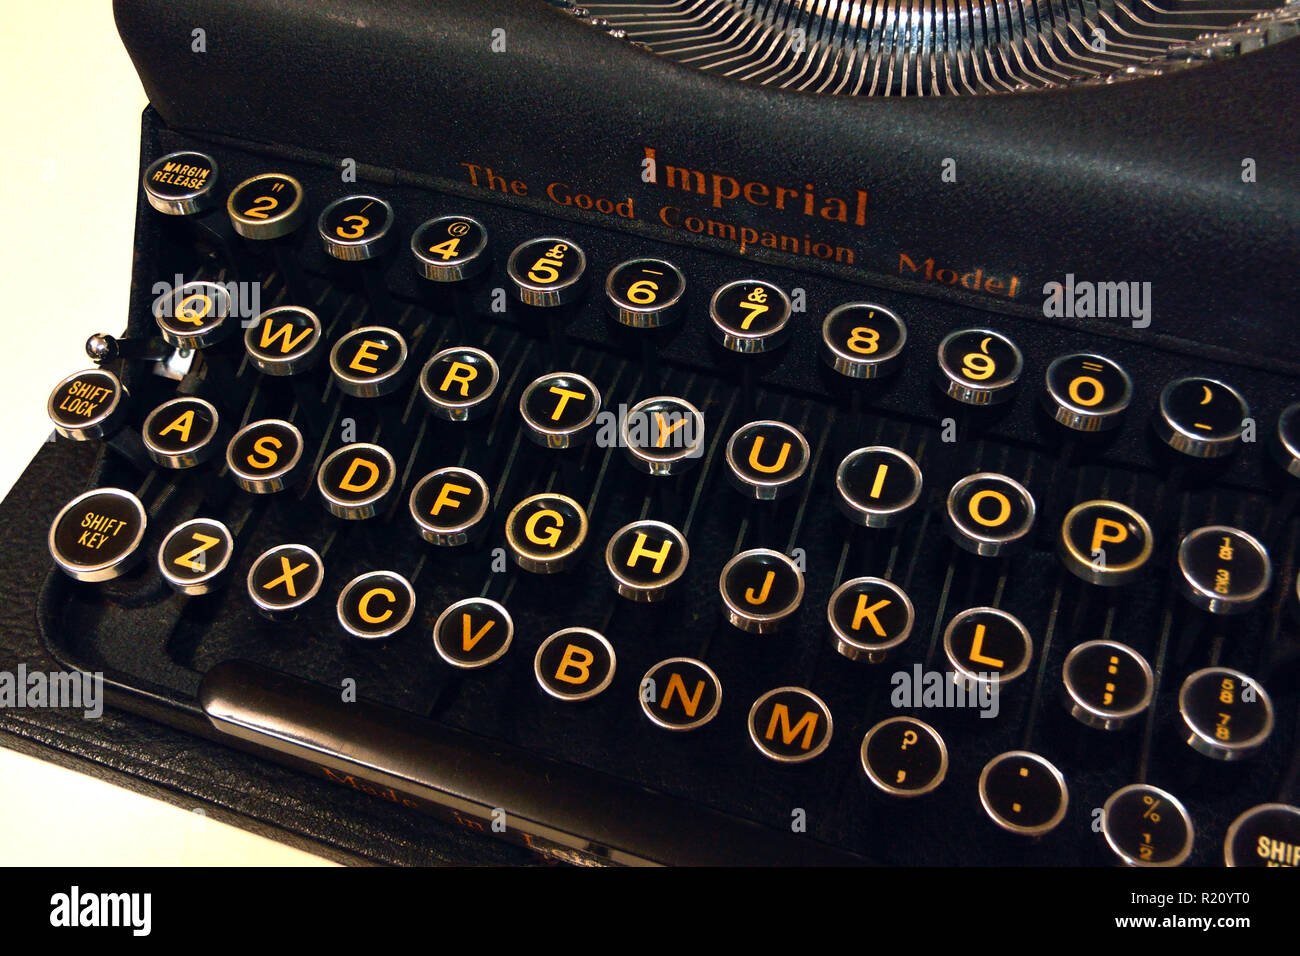 Imperial The Good Companion Model T portable typewriter, 1941 vintage Stock Photo